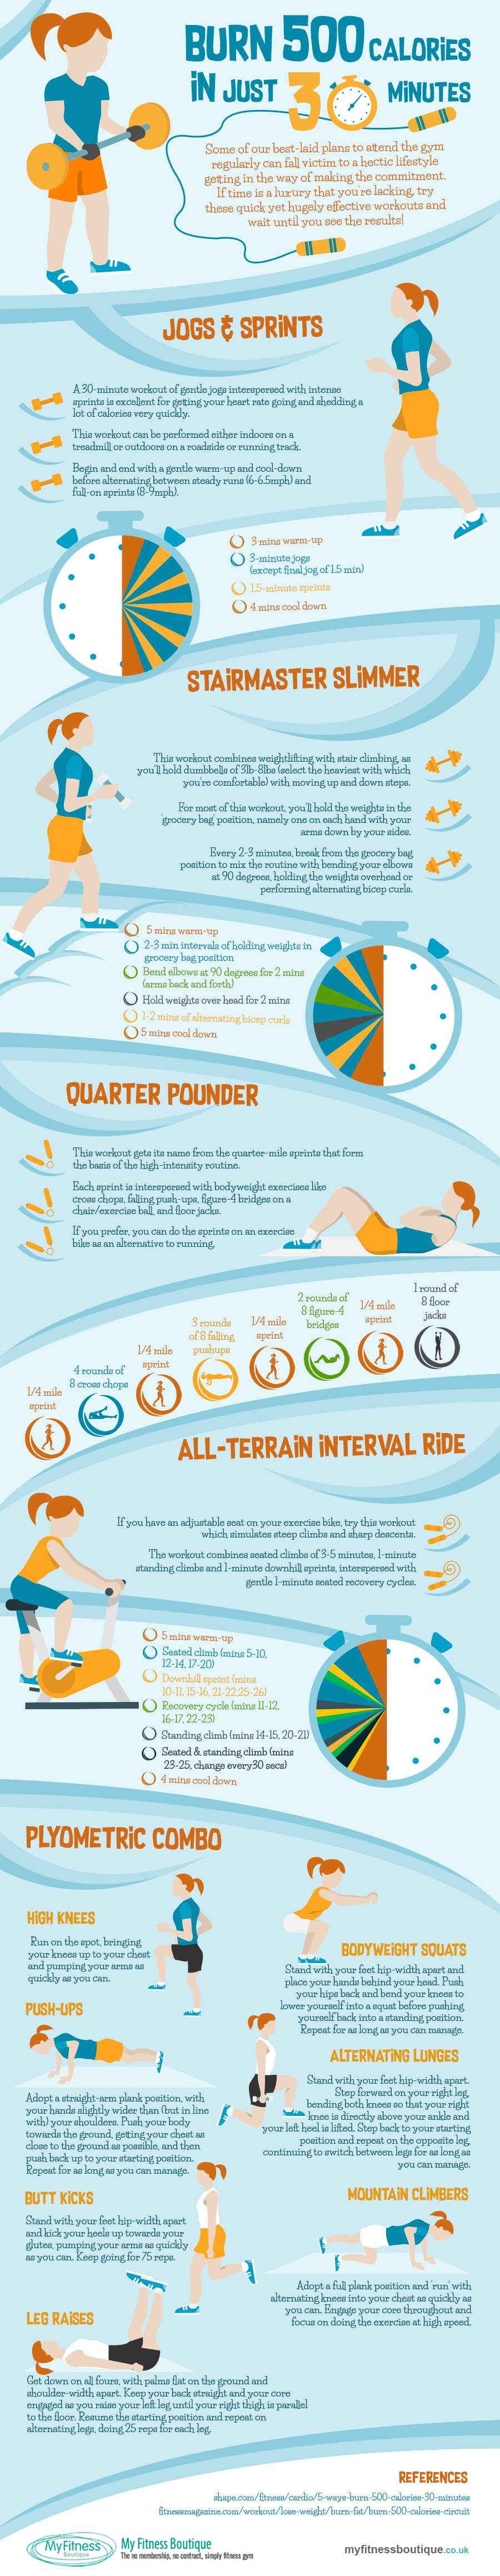 TRAINER TIPS: Burn 500 Calories a day in Just 30 Minutes (Infographic)